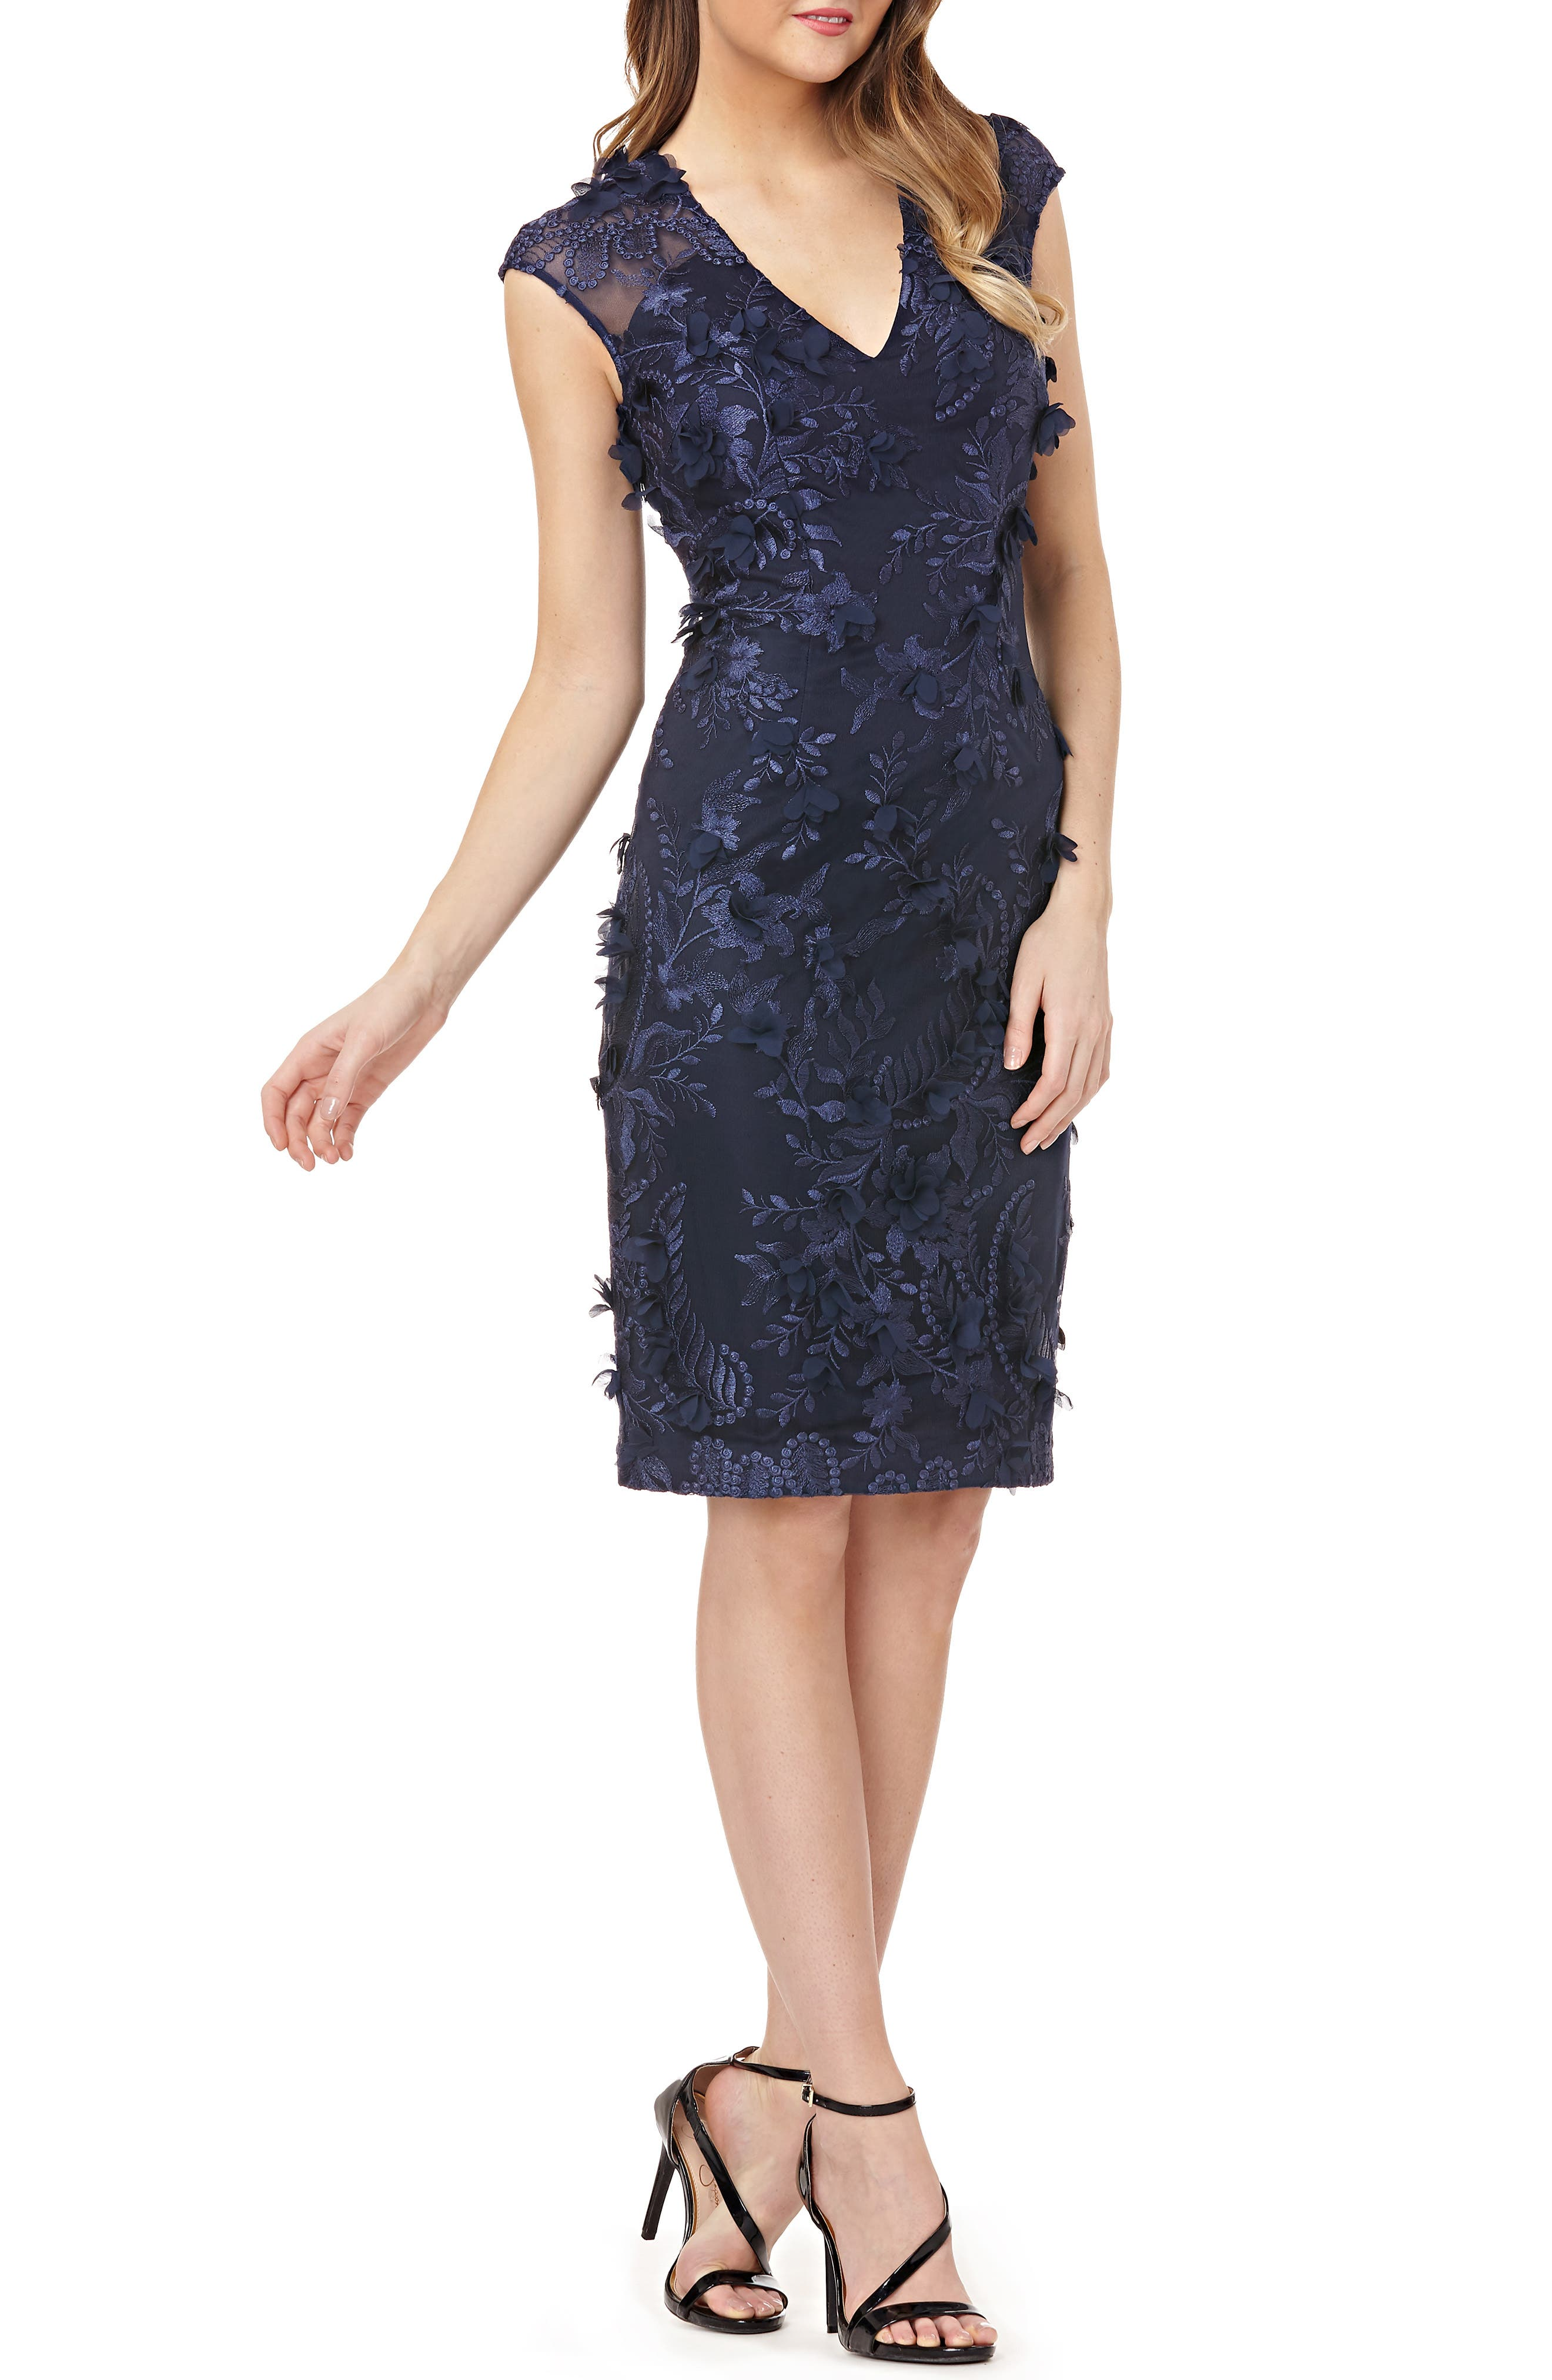 CARMEN MARC VALVO Infusion Floral Applique Dress in Navy